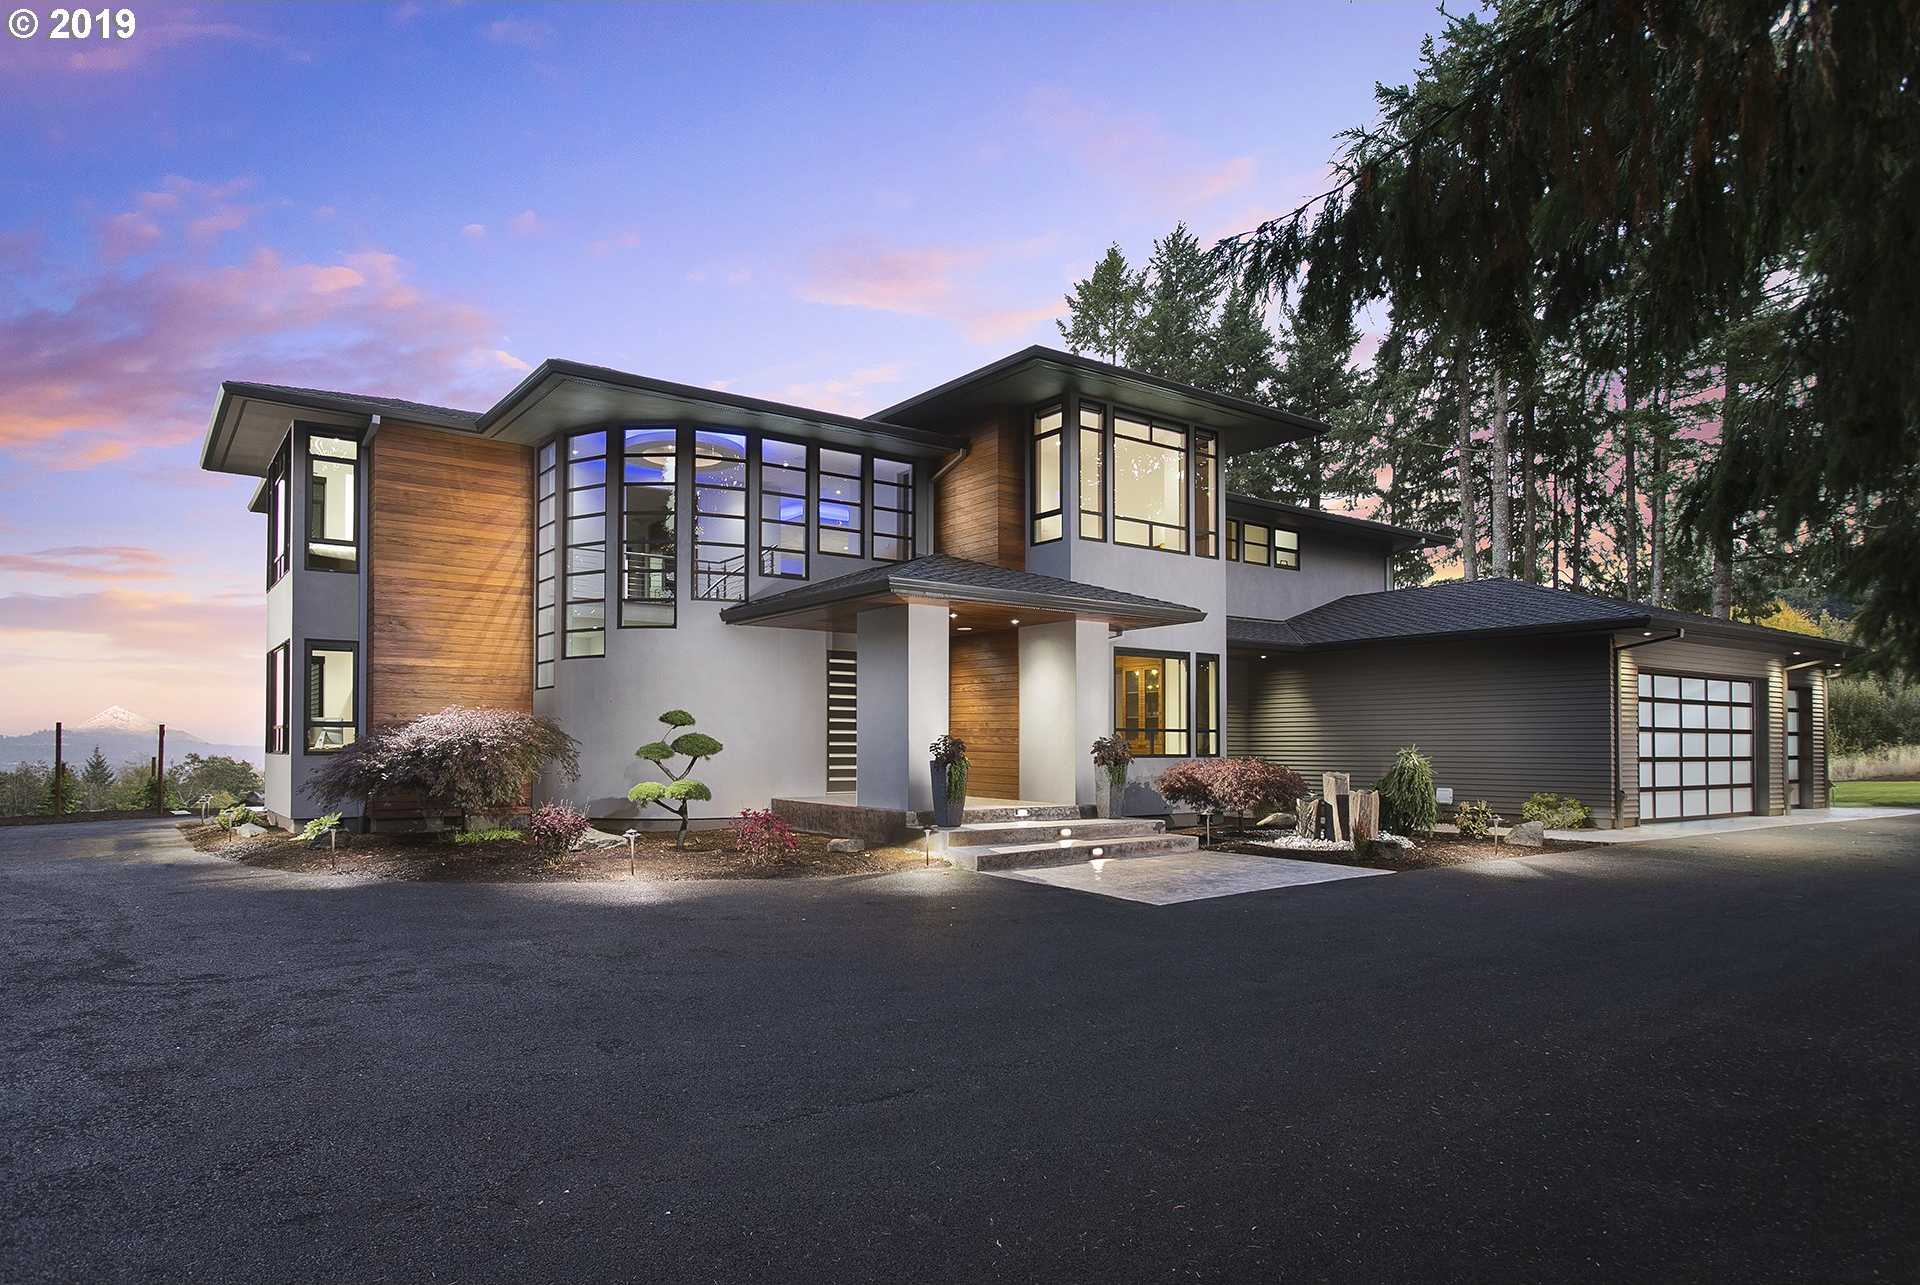 $2,695,000 - 4Br/6Ba -  for Sale in Cpo 6 Cooper Mtn-aloha N, Beaverton